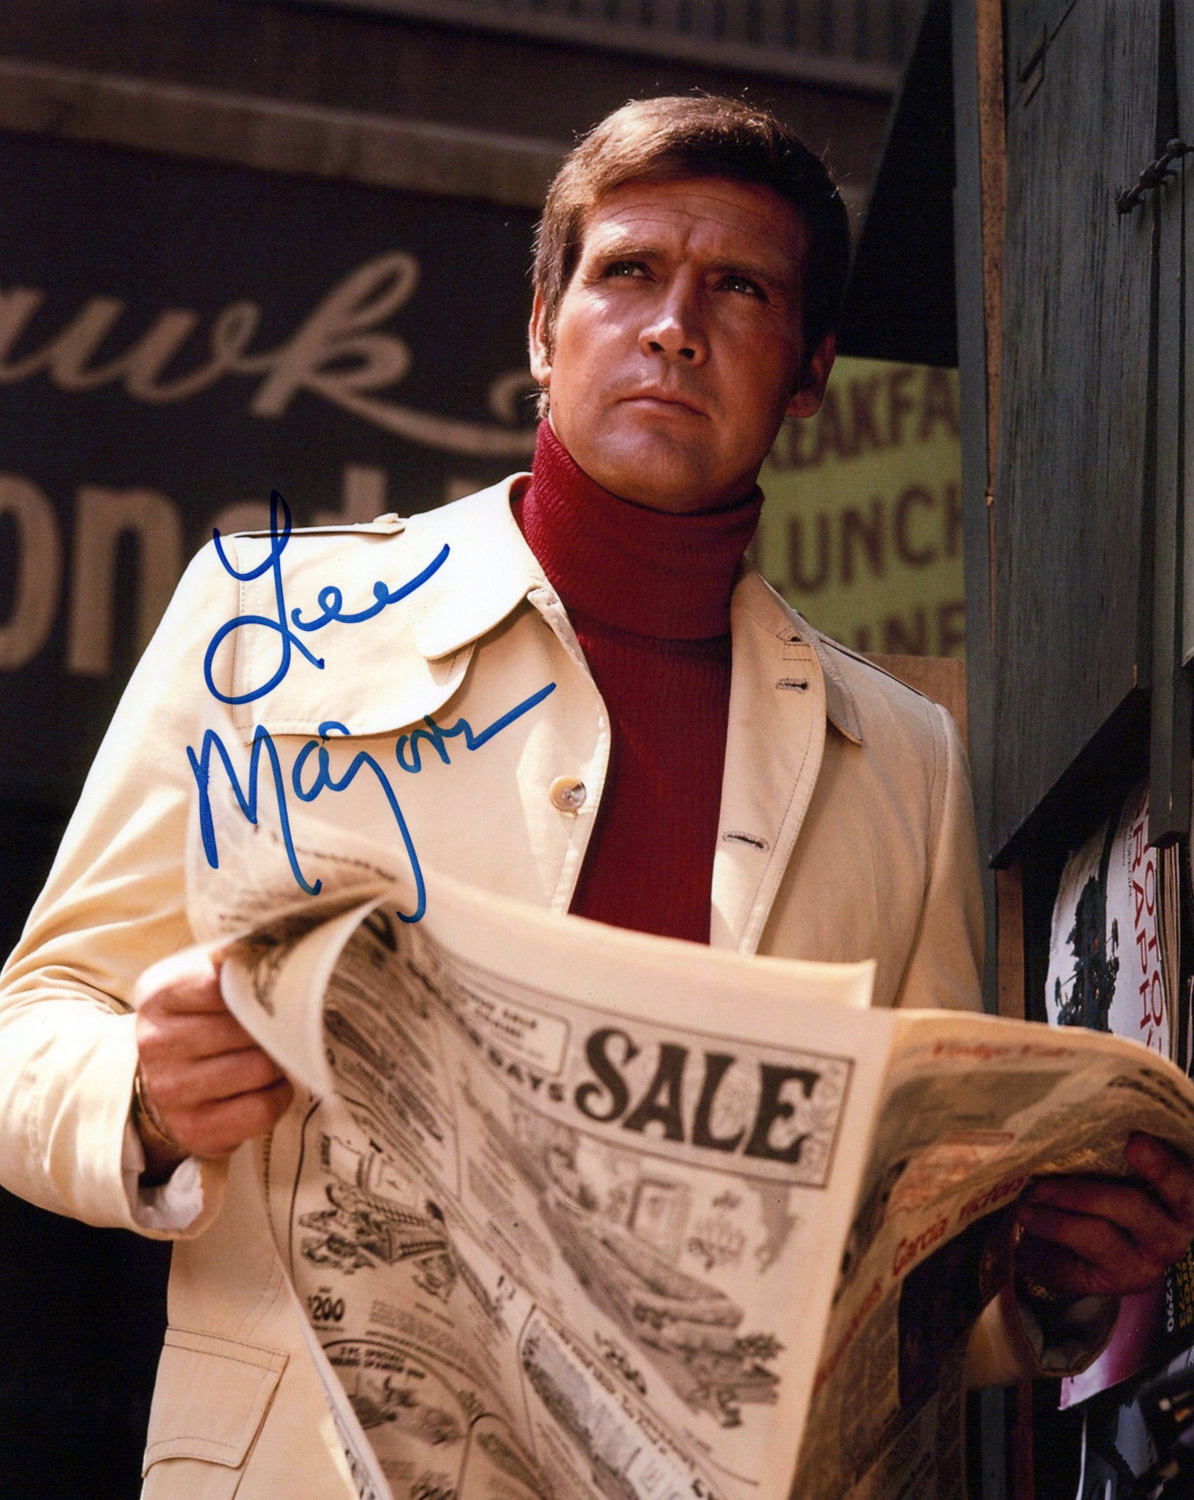 Lee Majors Original Autogramm auf Foto 20x25cm - Six Million Dollar Man